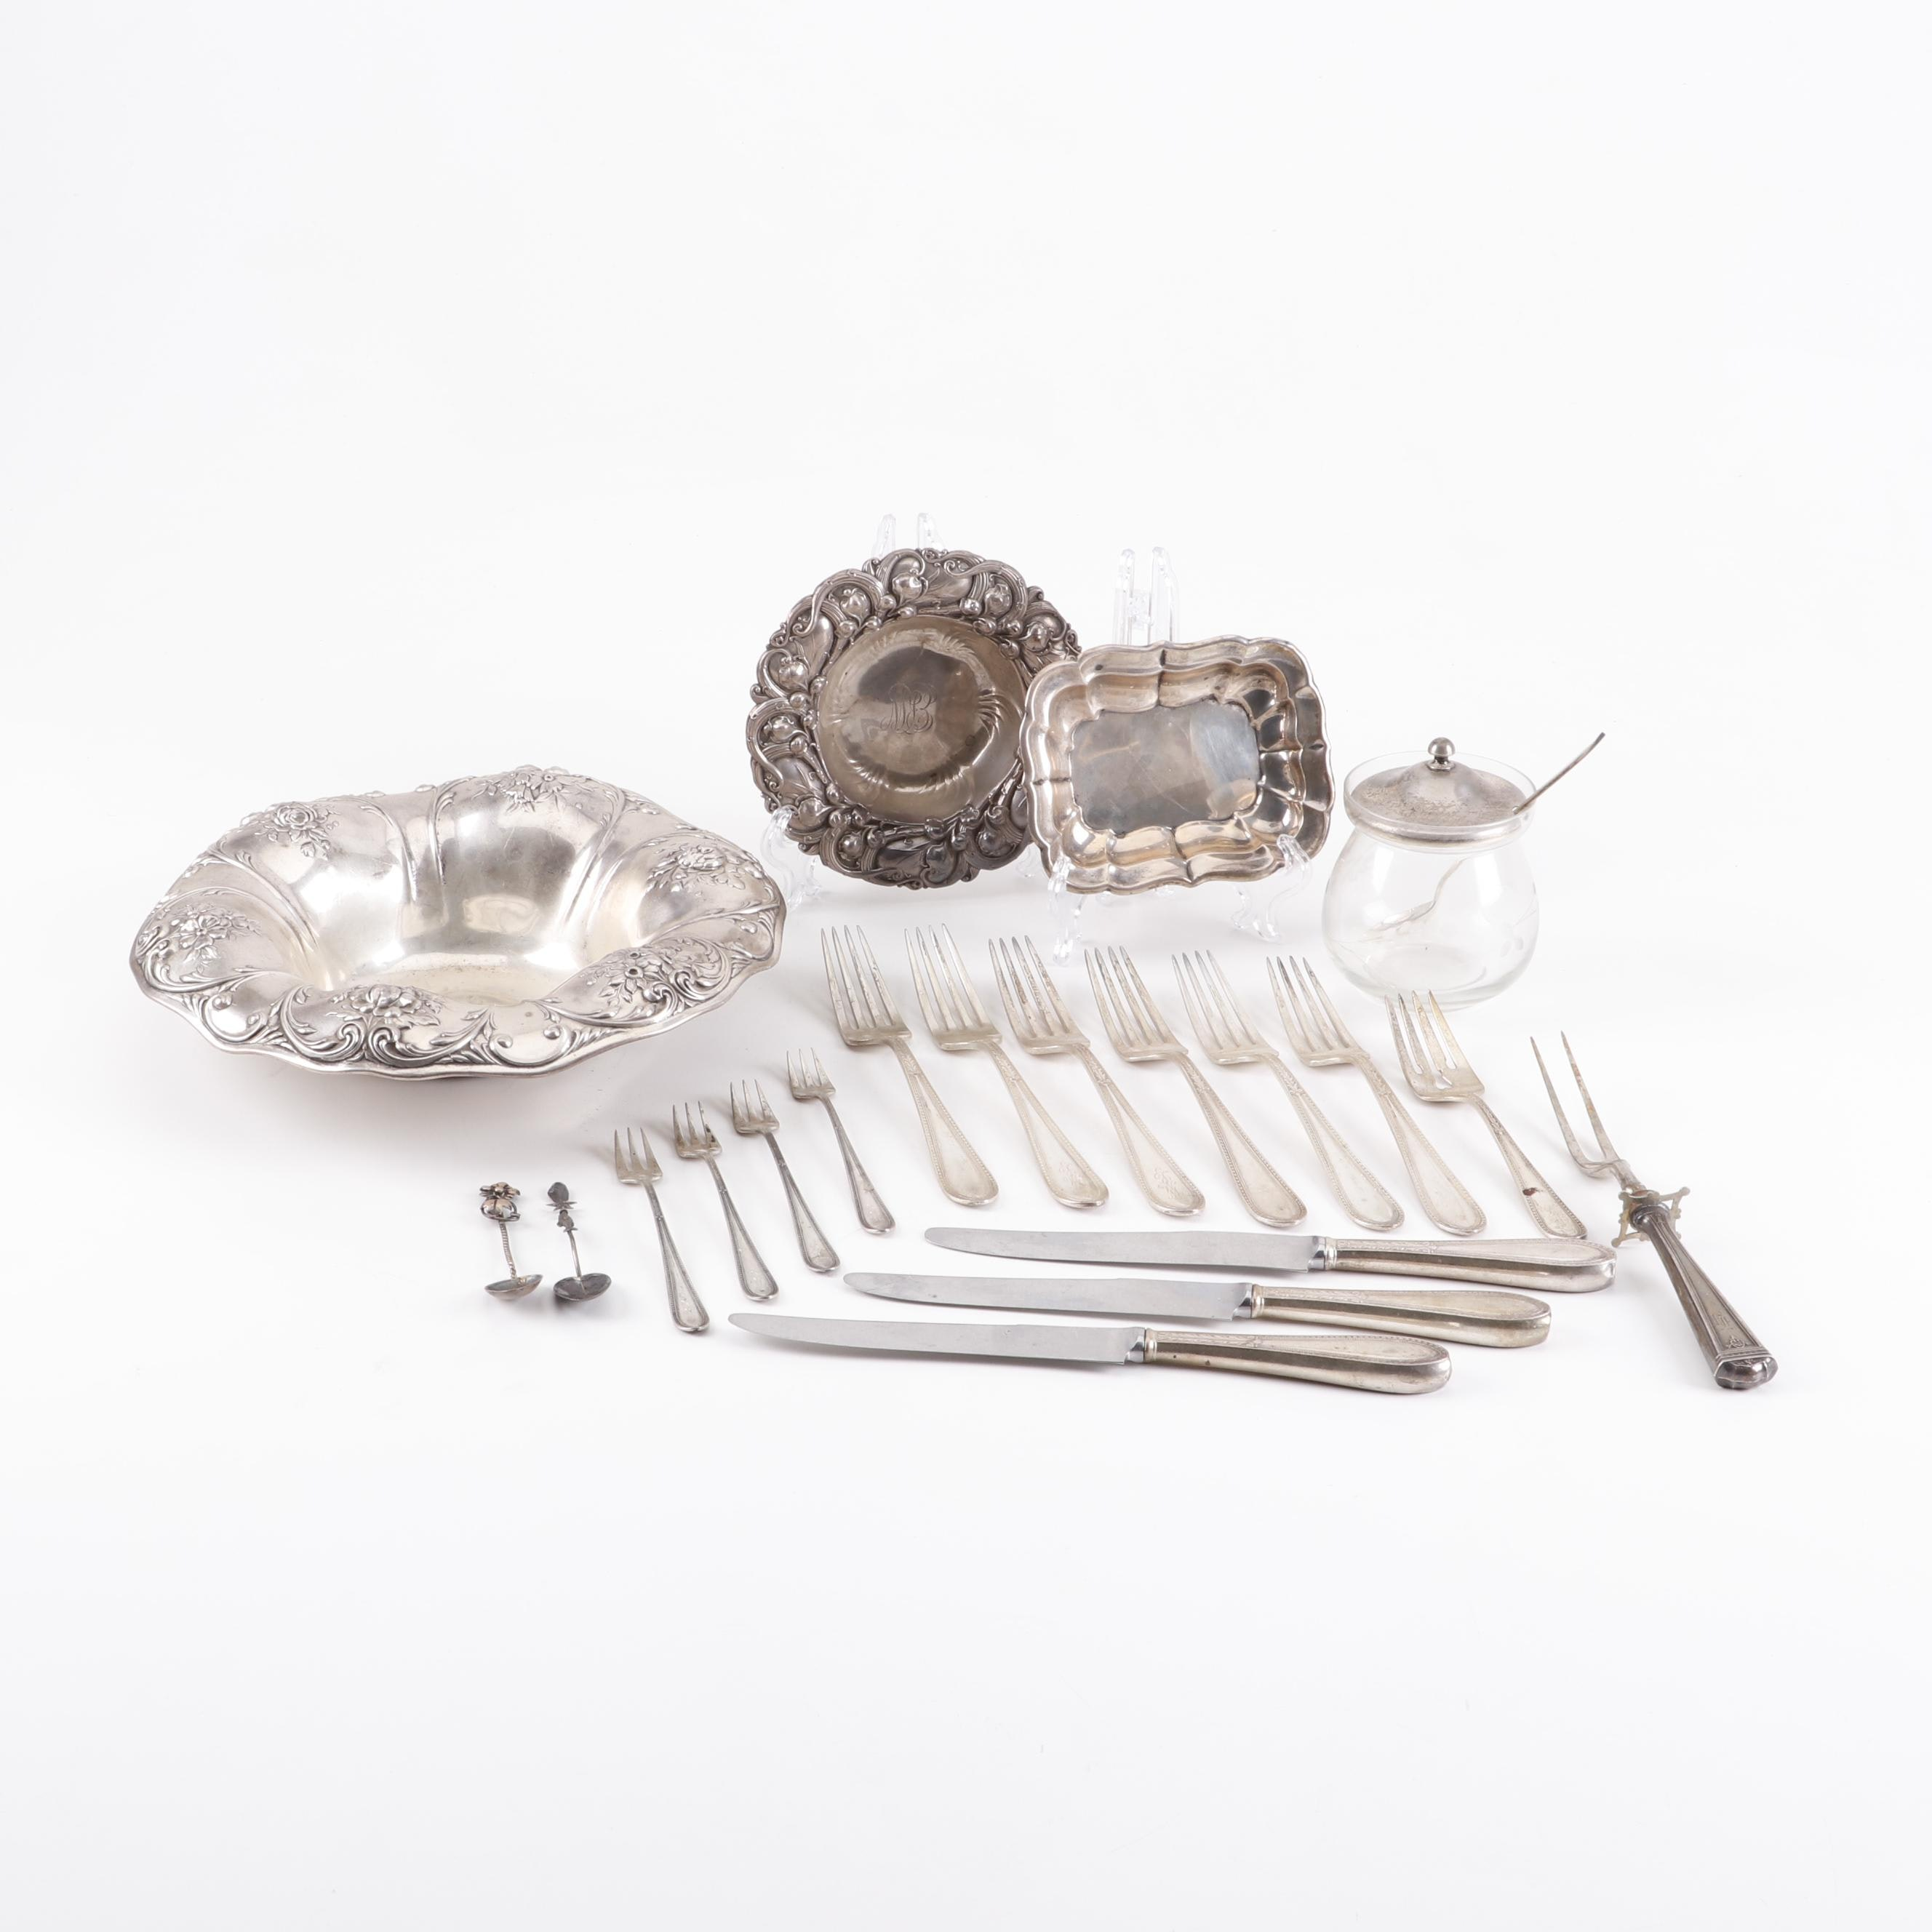 Sterling Silver Flatware and Tableware